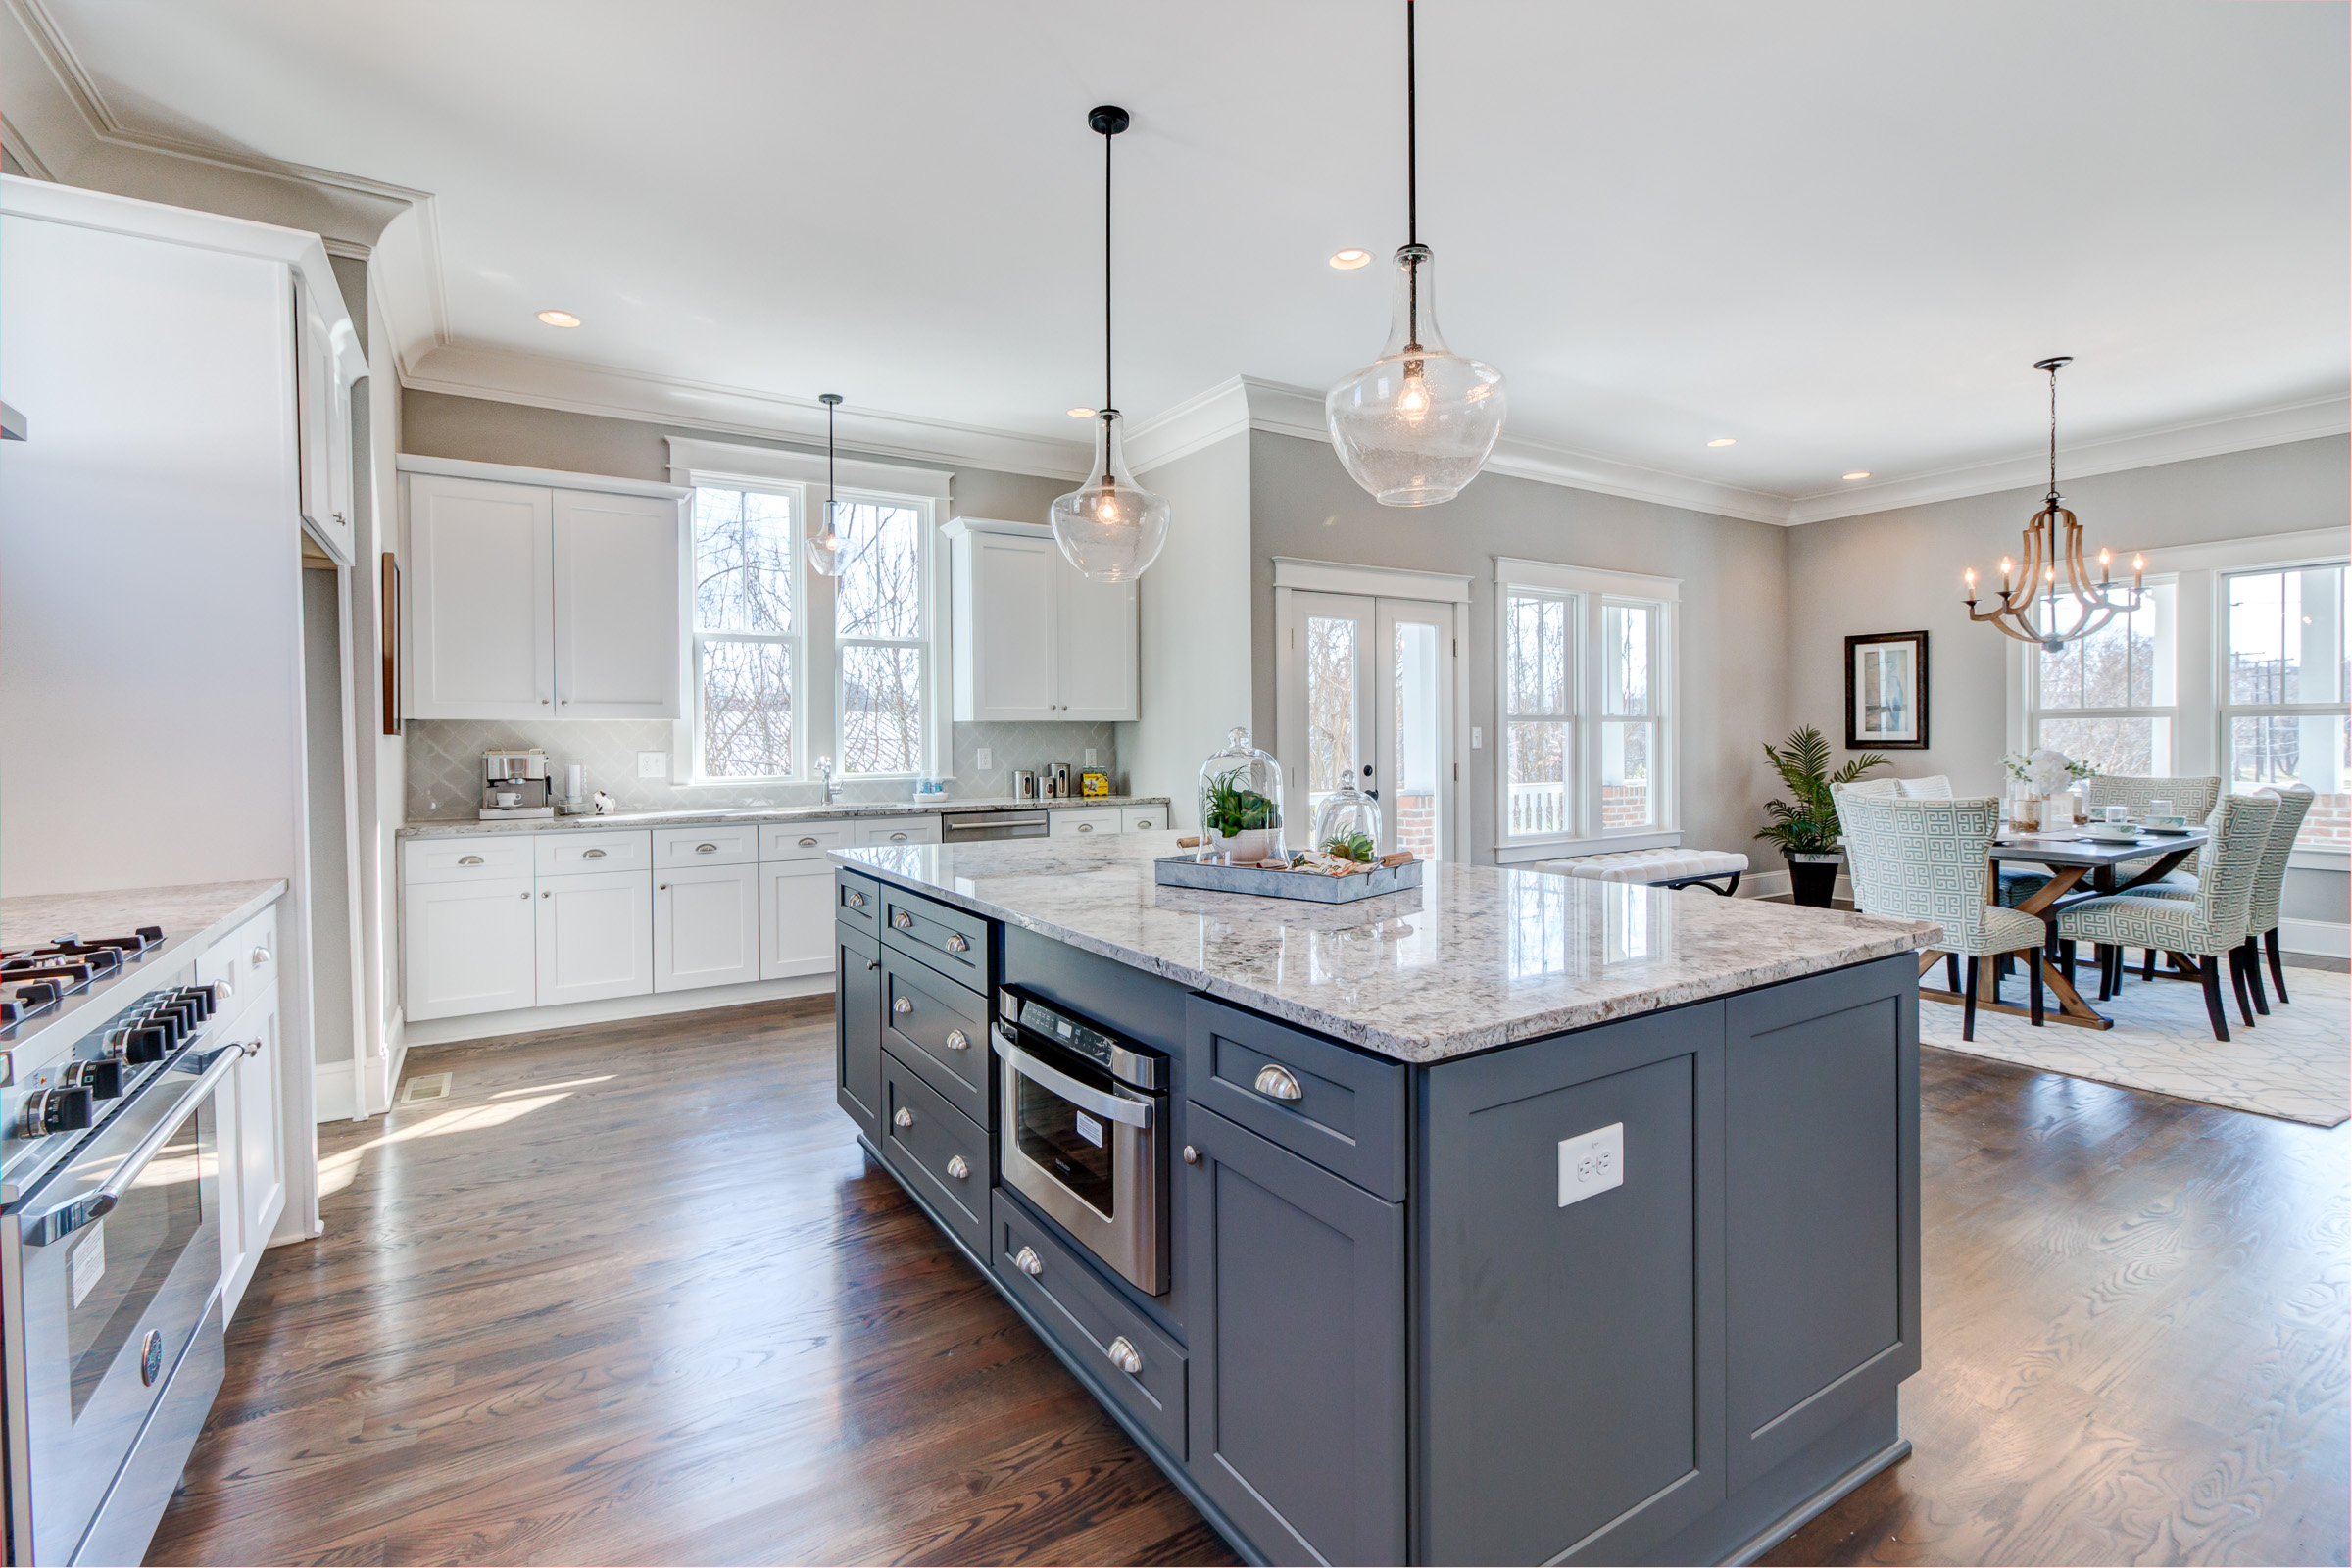 Large kitchen island in a dark bluie grey accents the white cabinetry and white counter tops. Wood flooring keeps the warm inviting feeling.